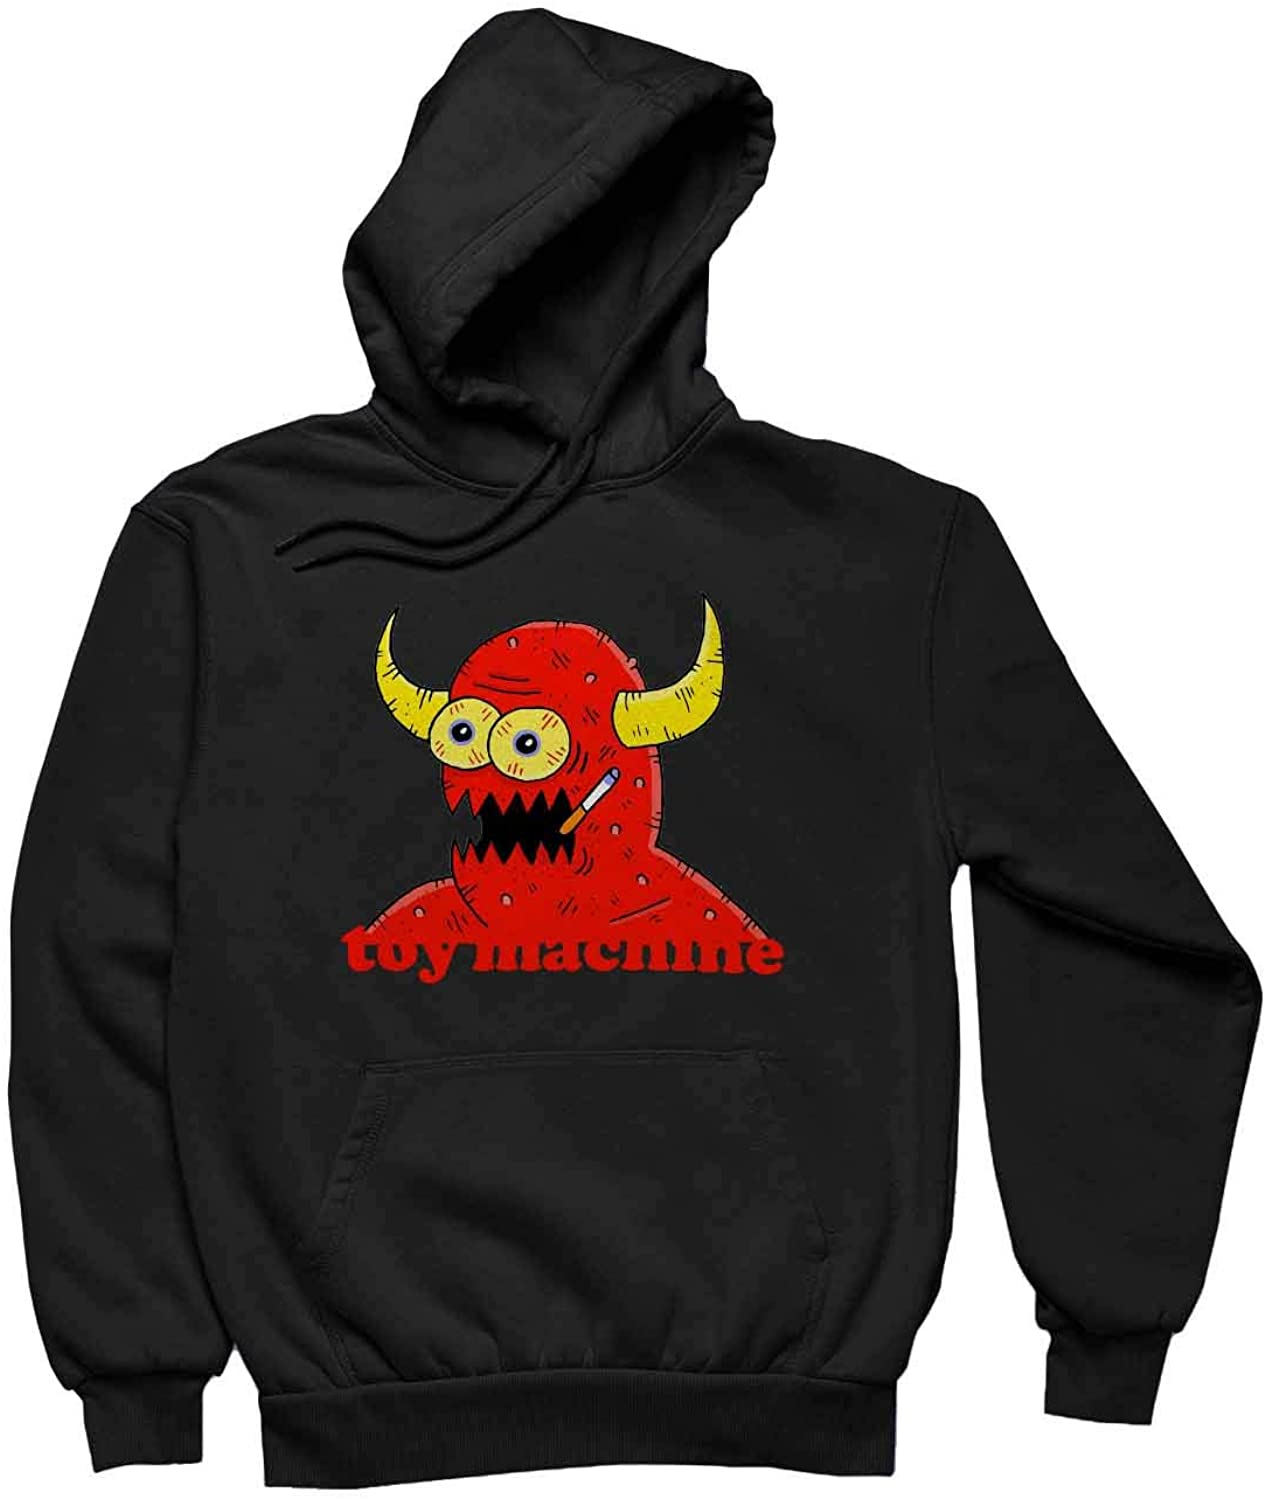 Women's Toy Machine Eye Funny Hoodie Long Sleeve Design Pullover with Pocket